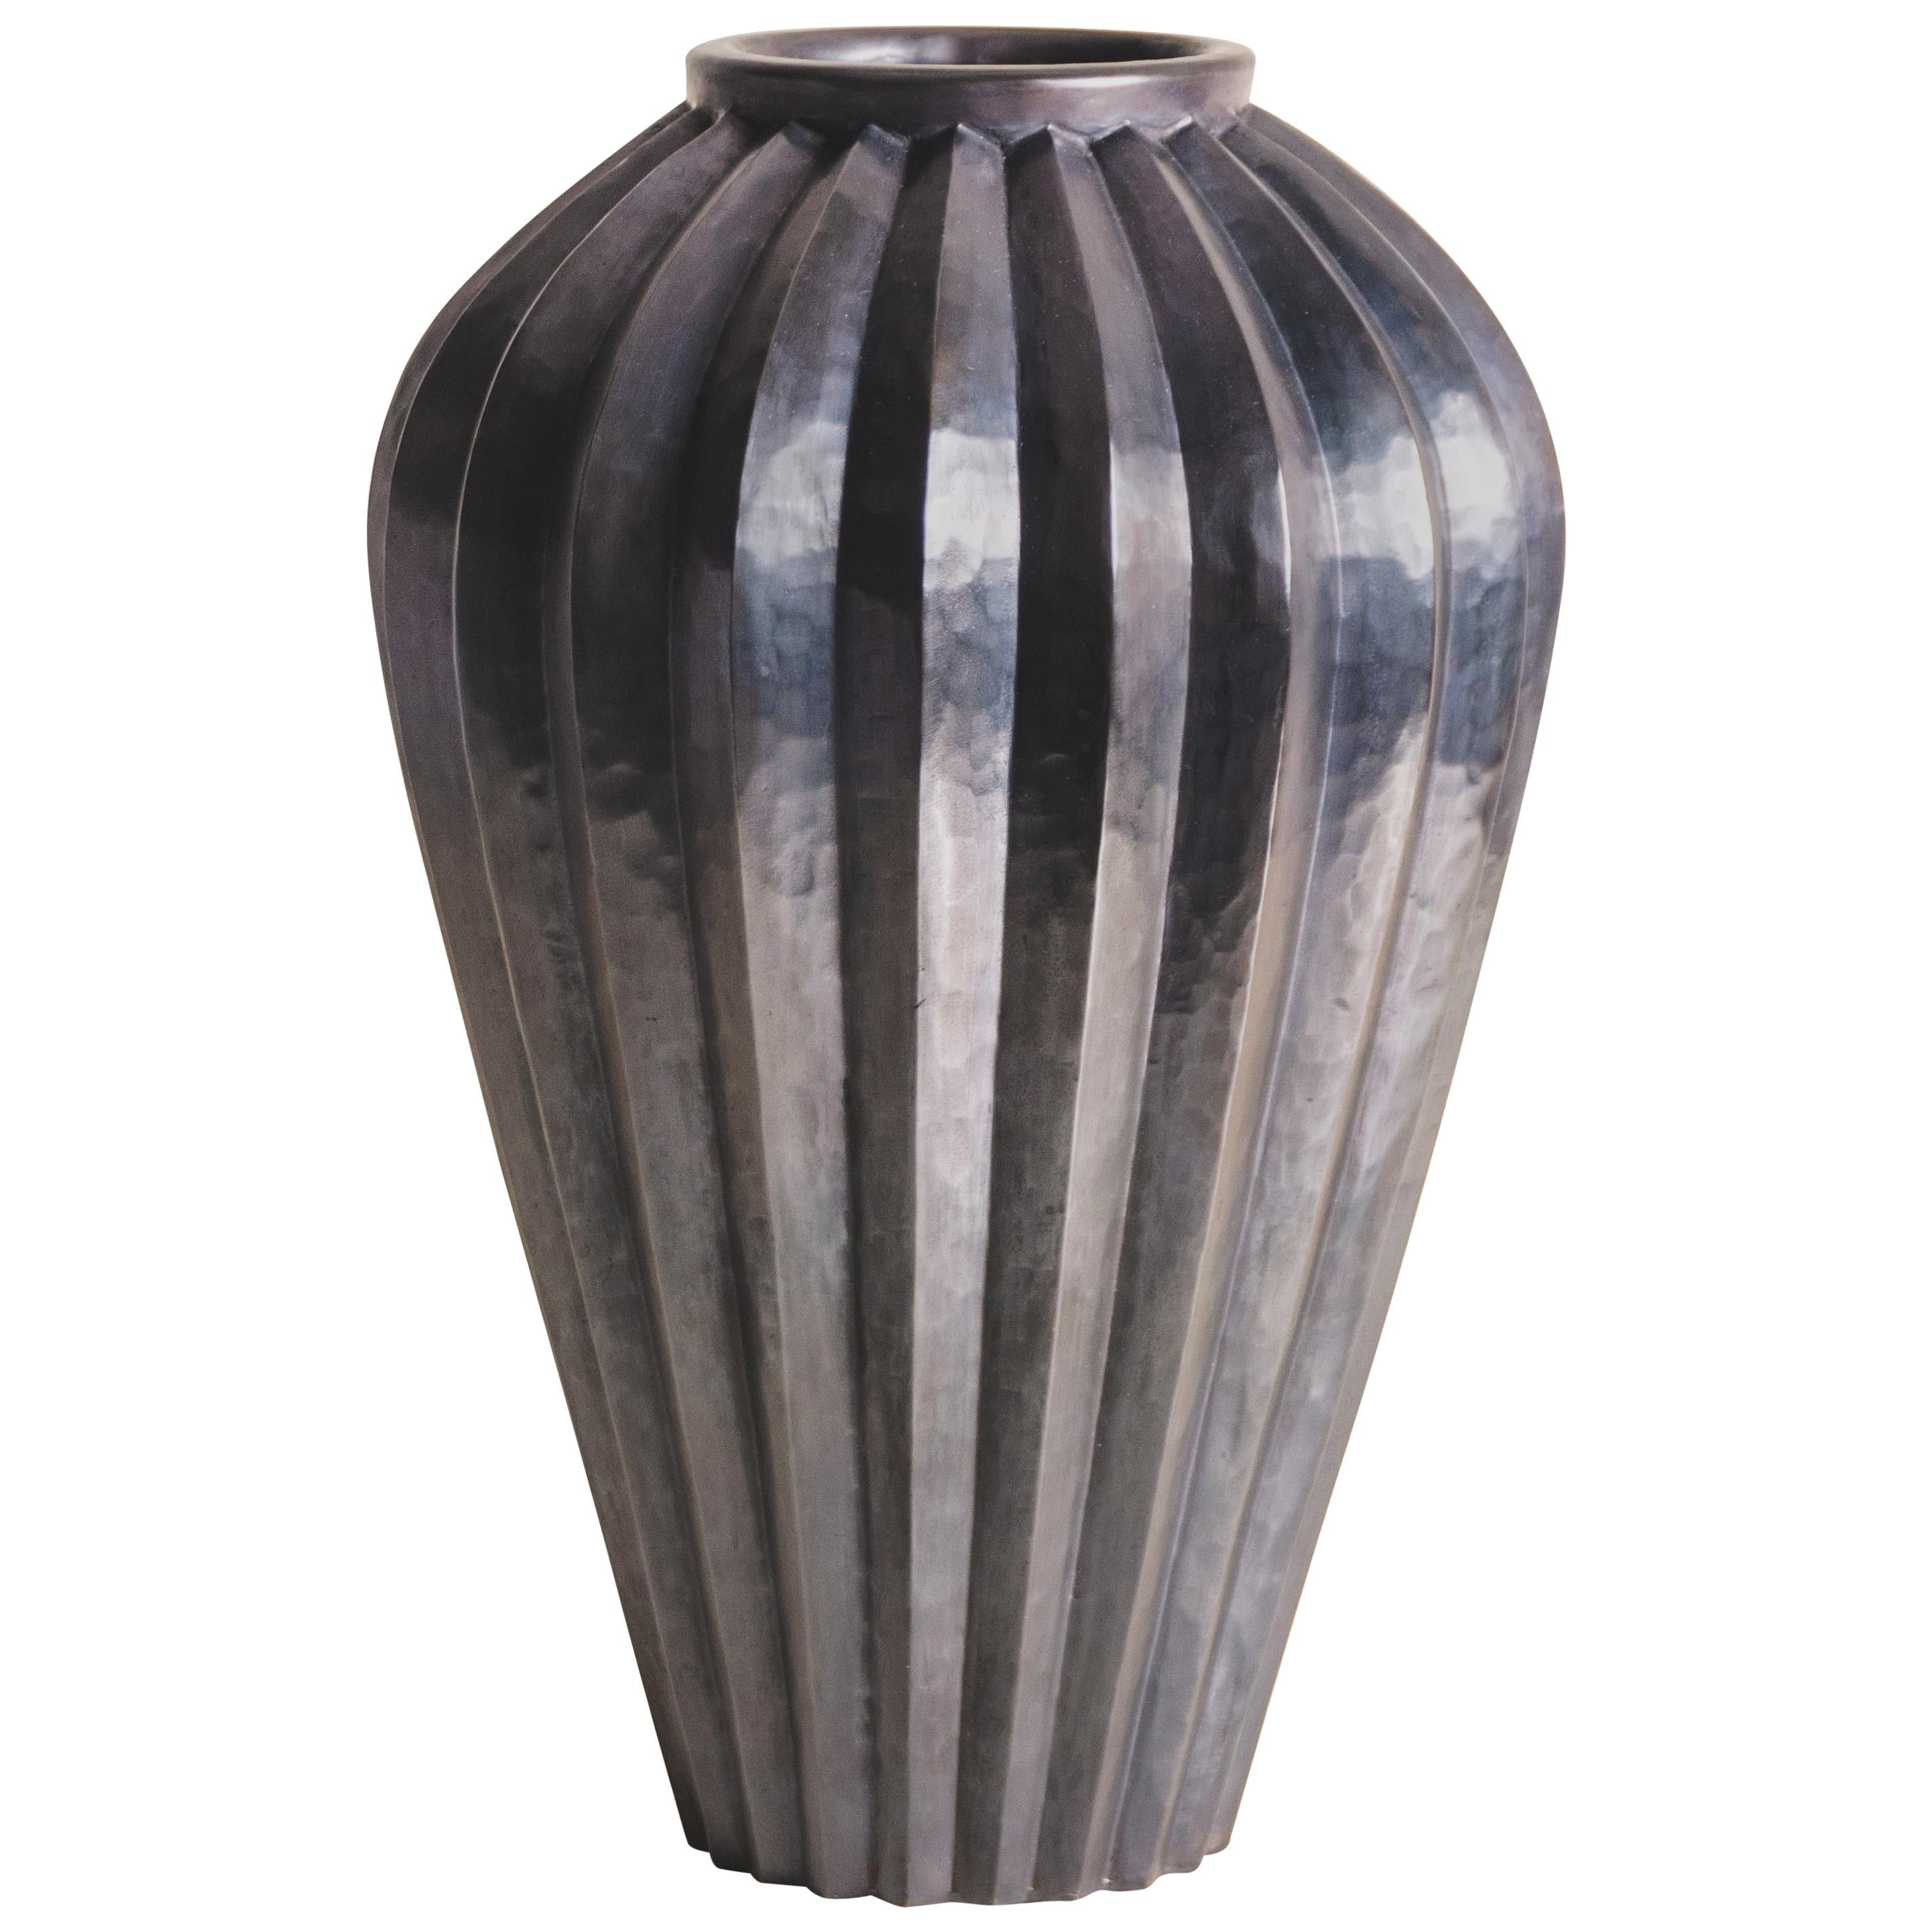 Jen Lin Vase, Antique Copper by Robert Kuo, Hand Repousse, Limited Edition